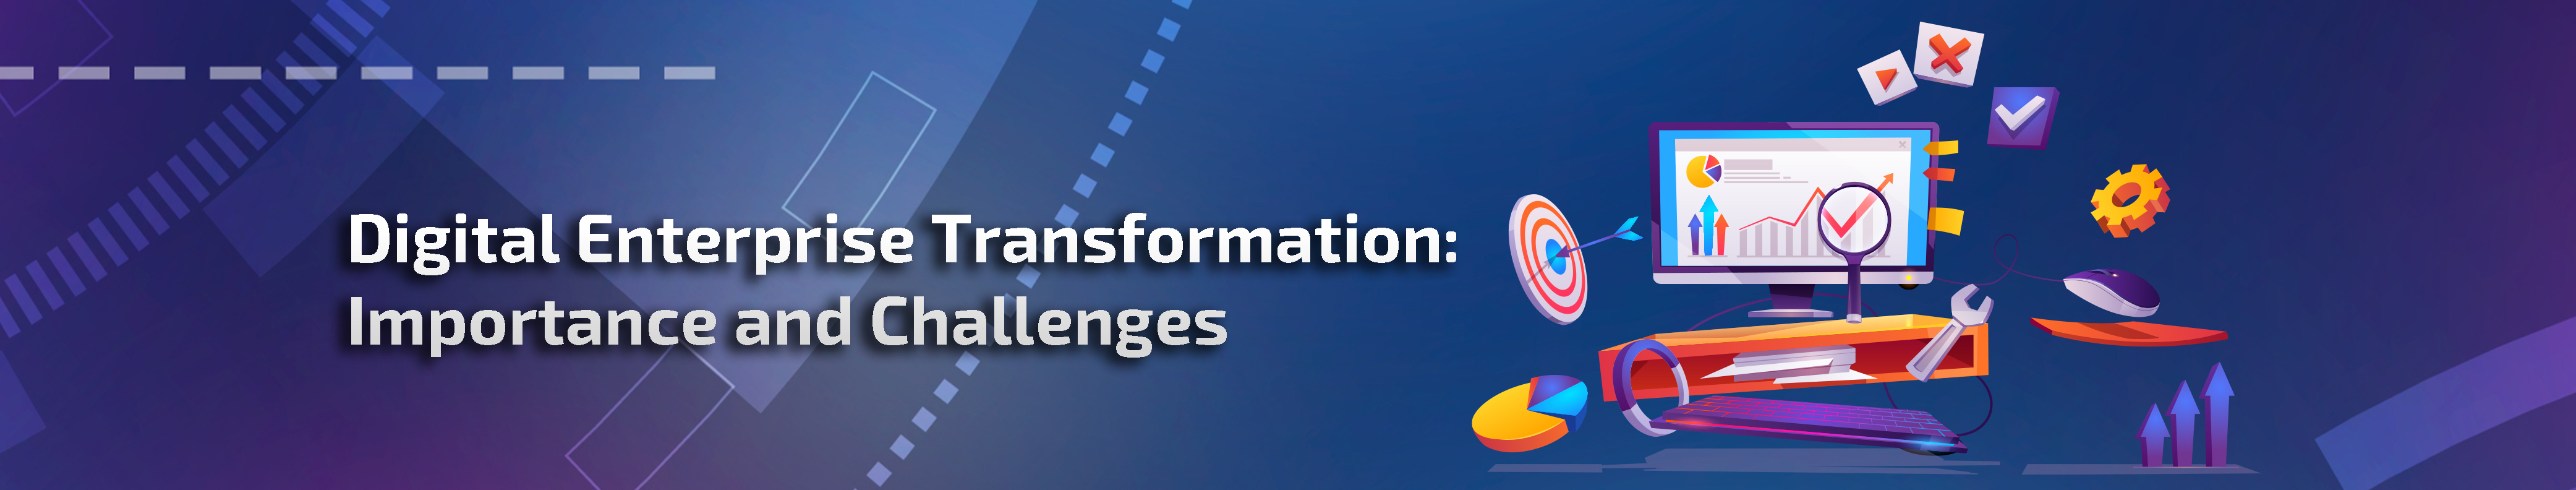 Digital Enterprise Transformation: Importance and Challenges